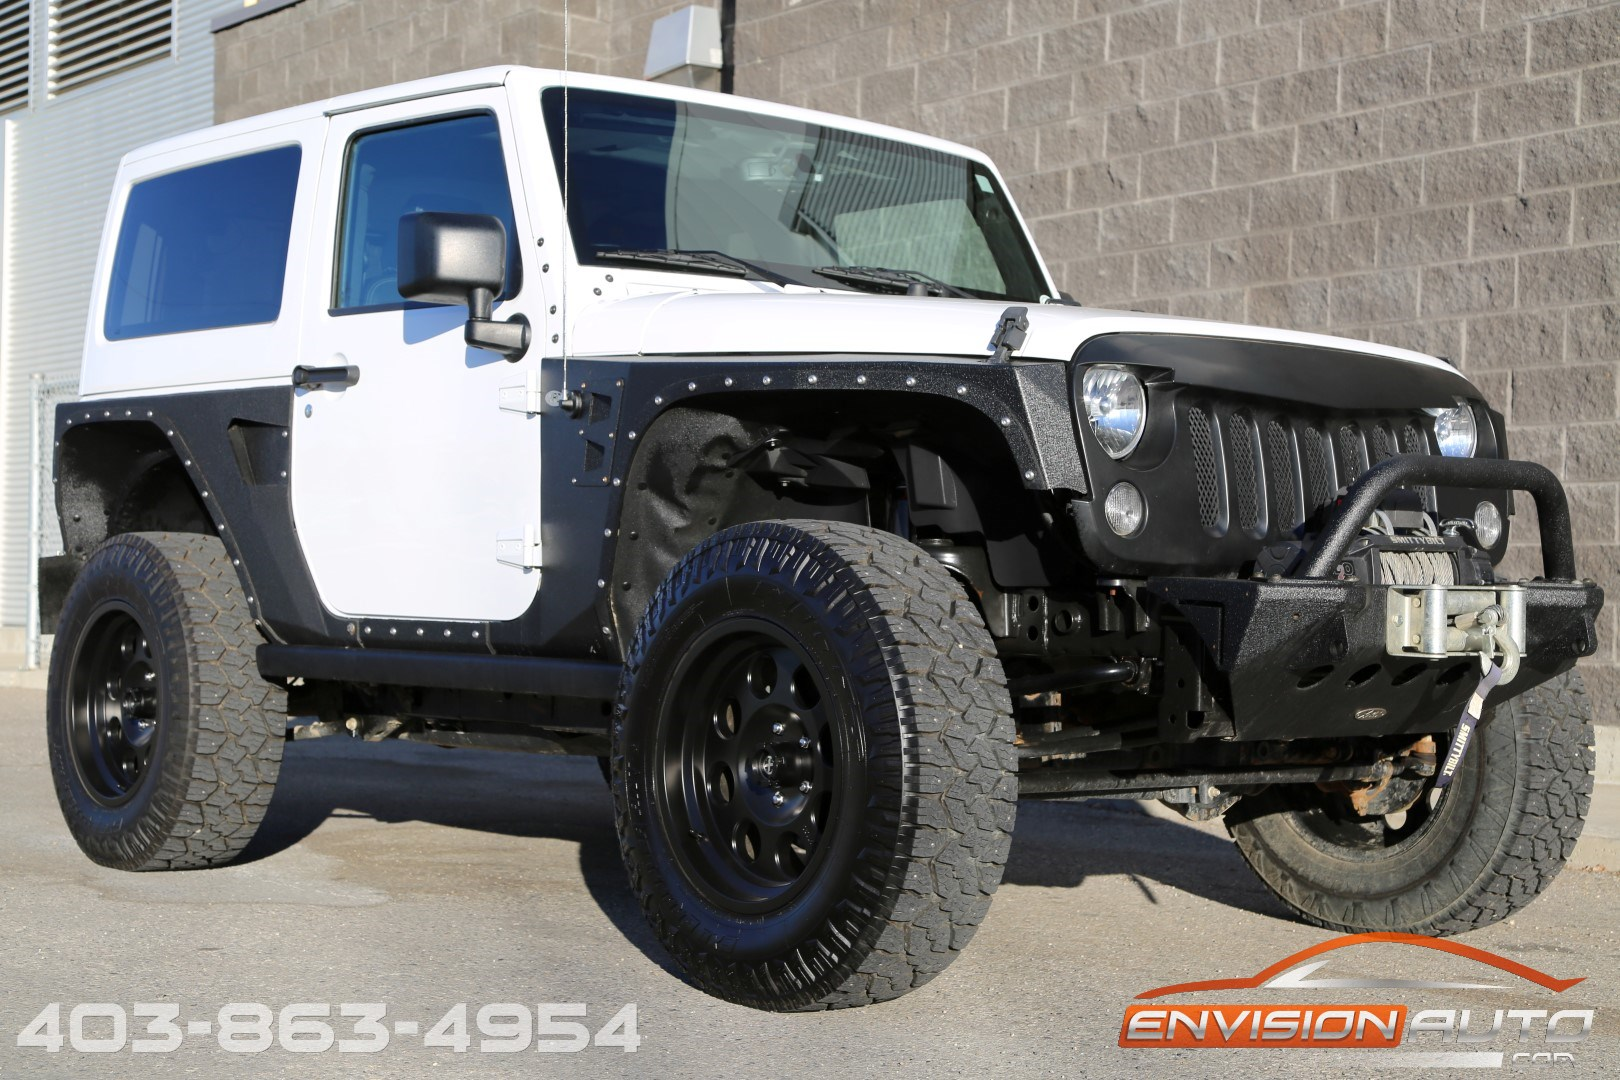 2015 jeep wrangler rubicon lifted custom only 20kms envision auto. Black Bedroom Furniture Sets. Home Design Ideas